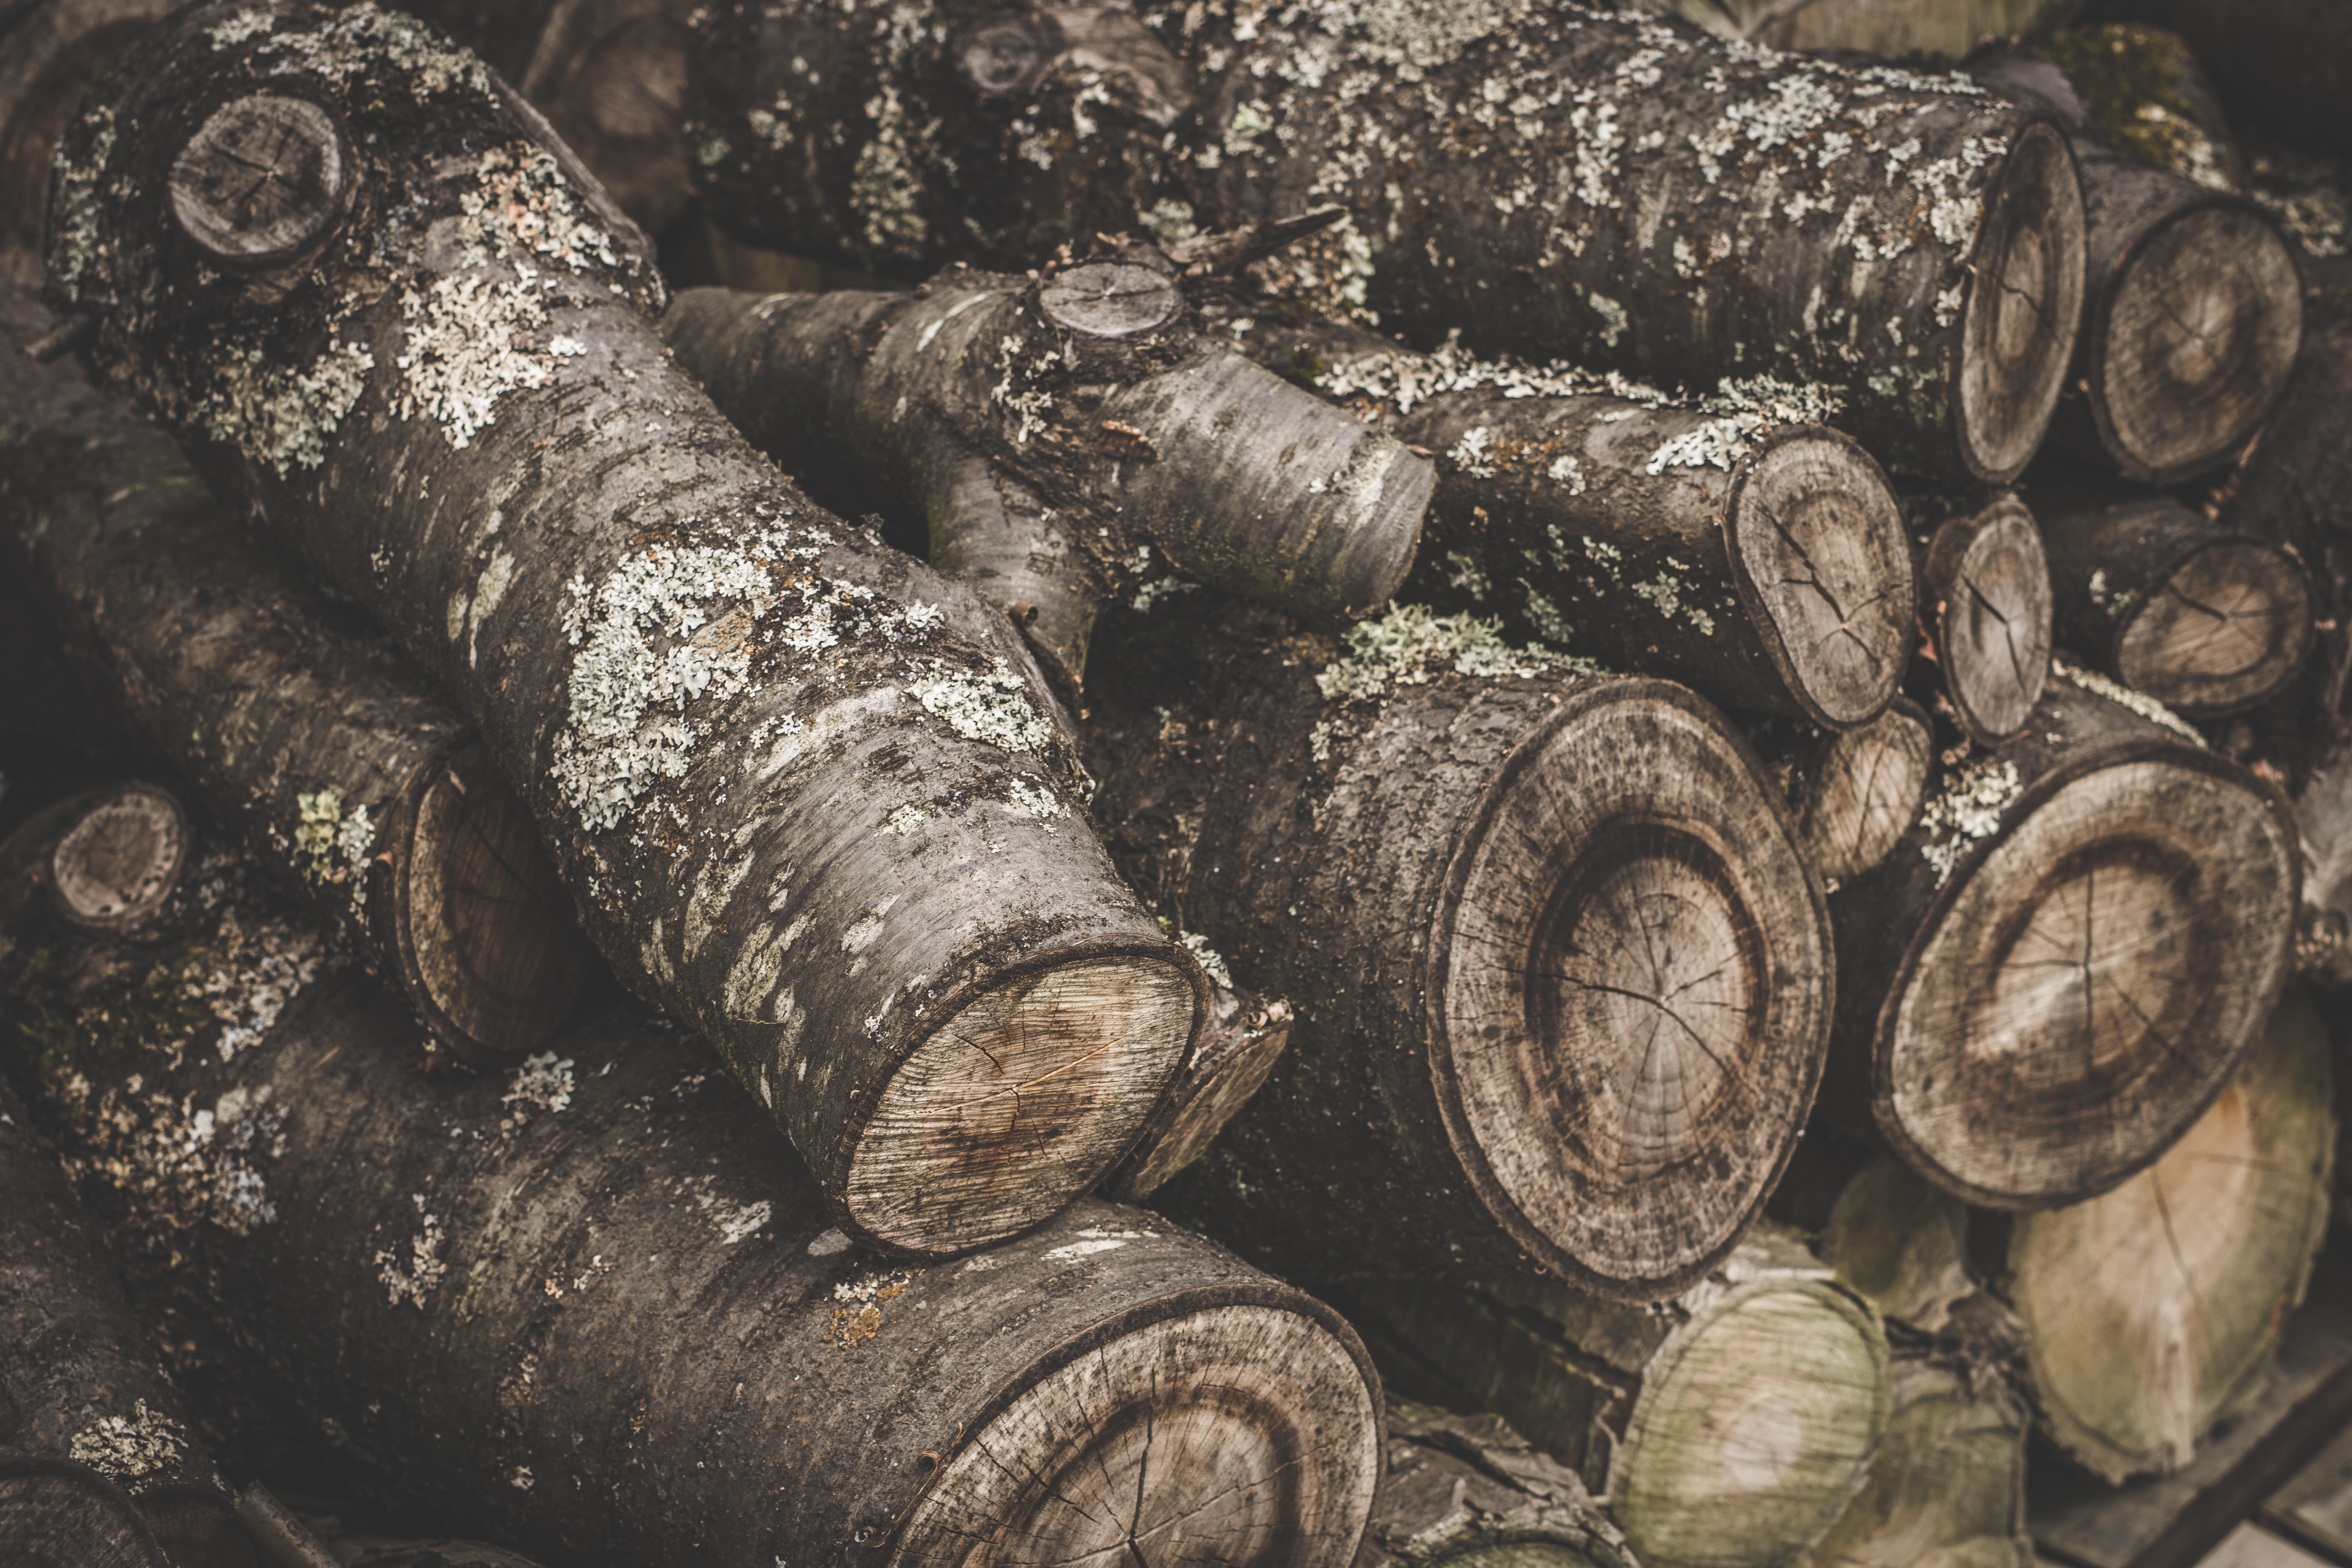 Large mossy logs stacked on top of each other